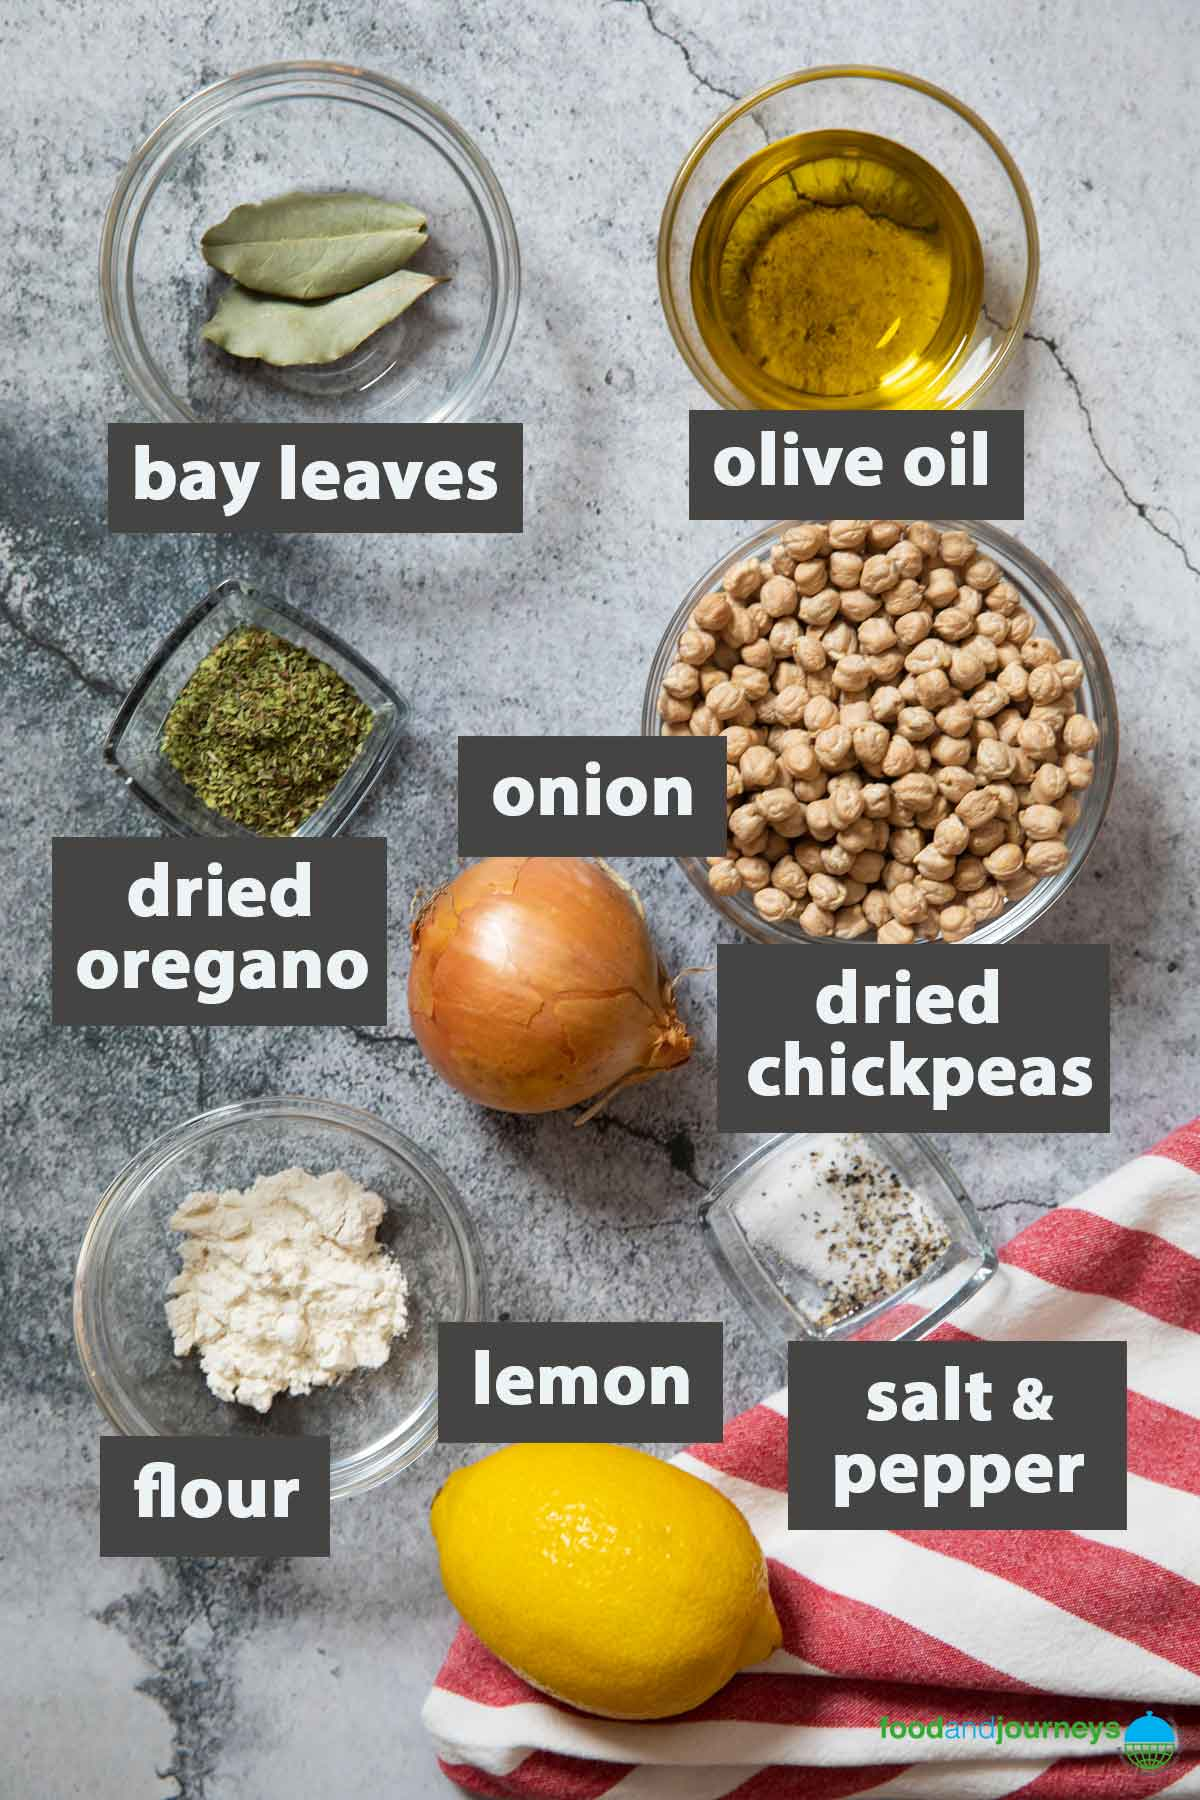 An image showing all the ingredients you need to prepare chickpea soup at home.